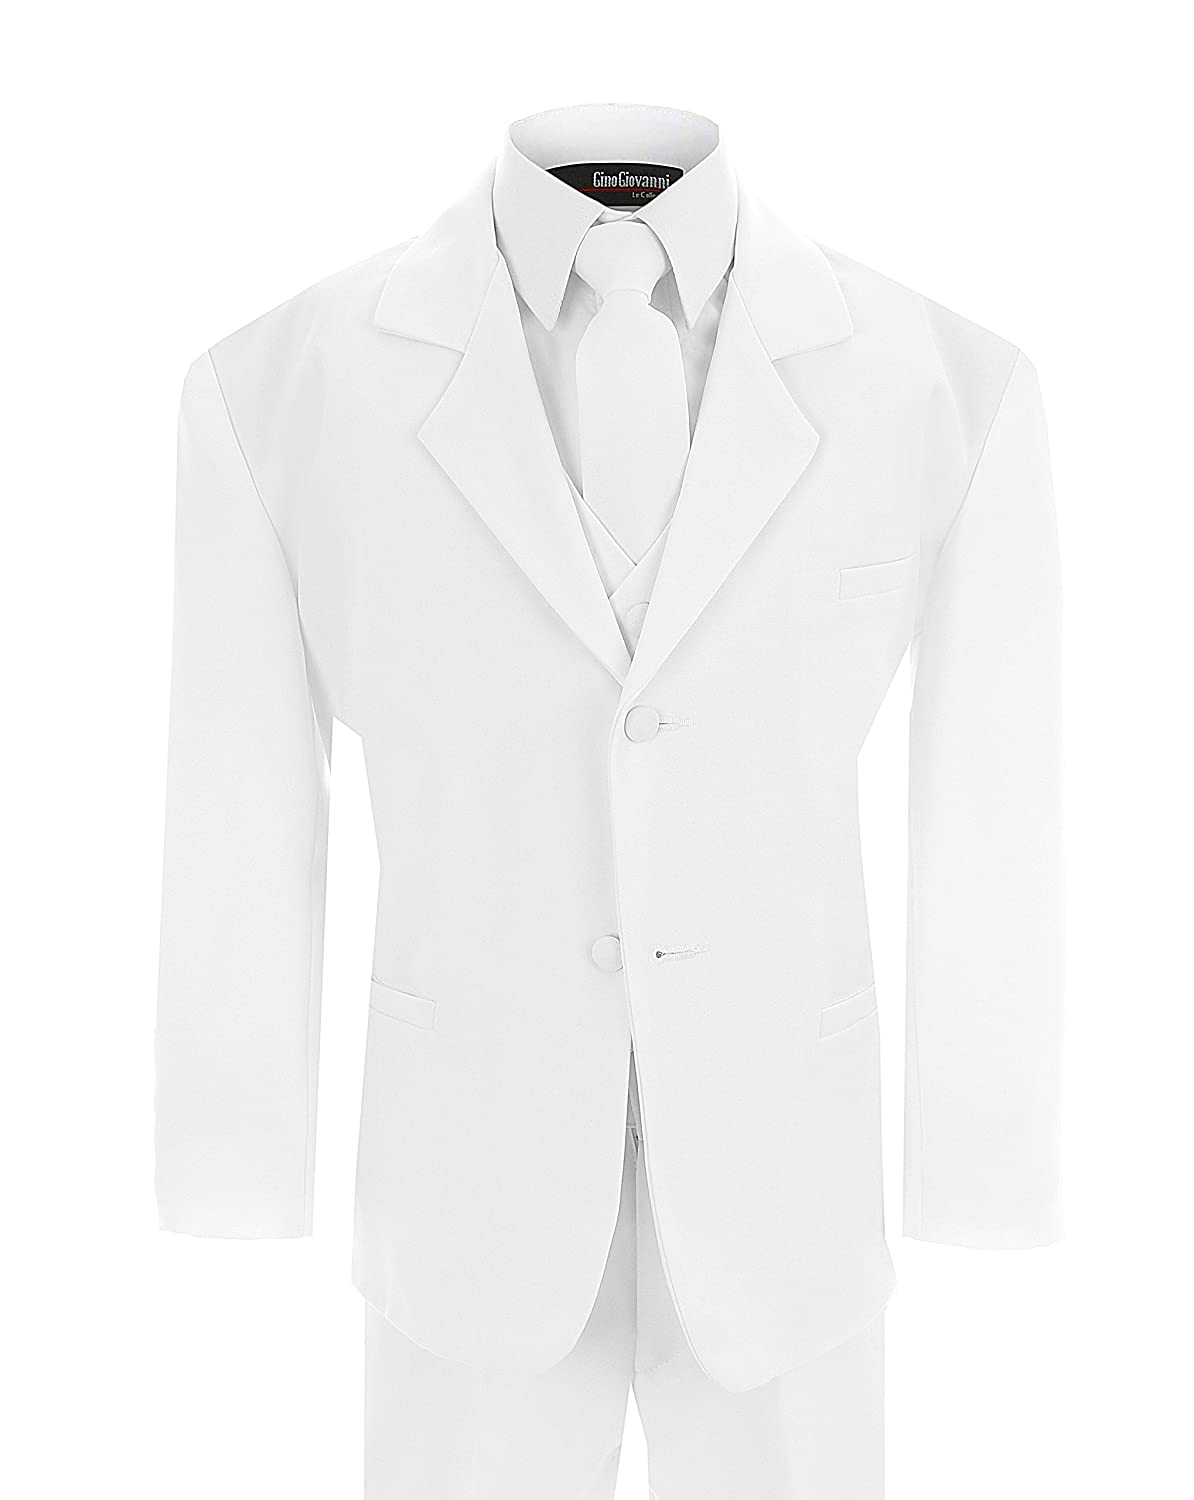 Gino Giovanni Little Boy's Formal Dresswear Set G214 (7, White Suit) GG214whitesuit7